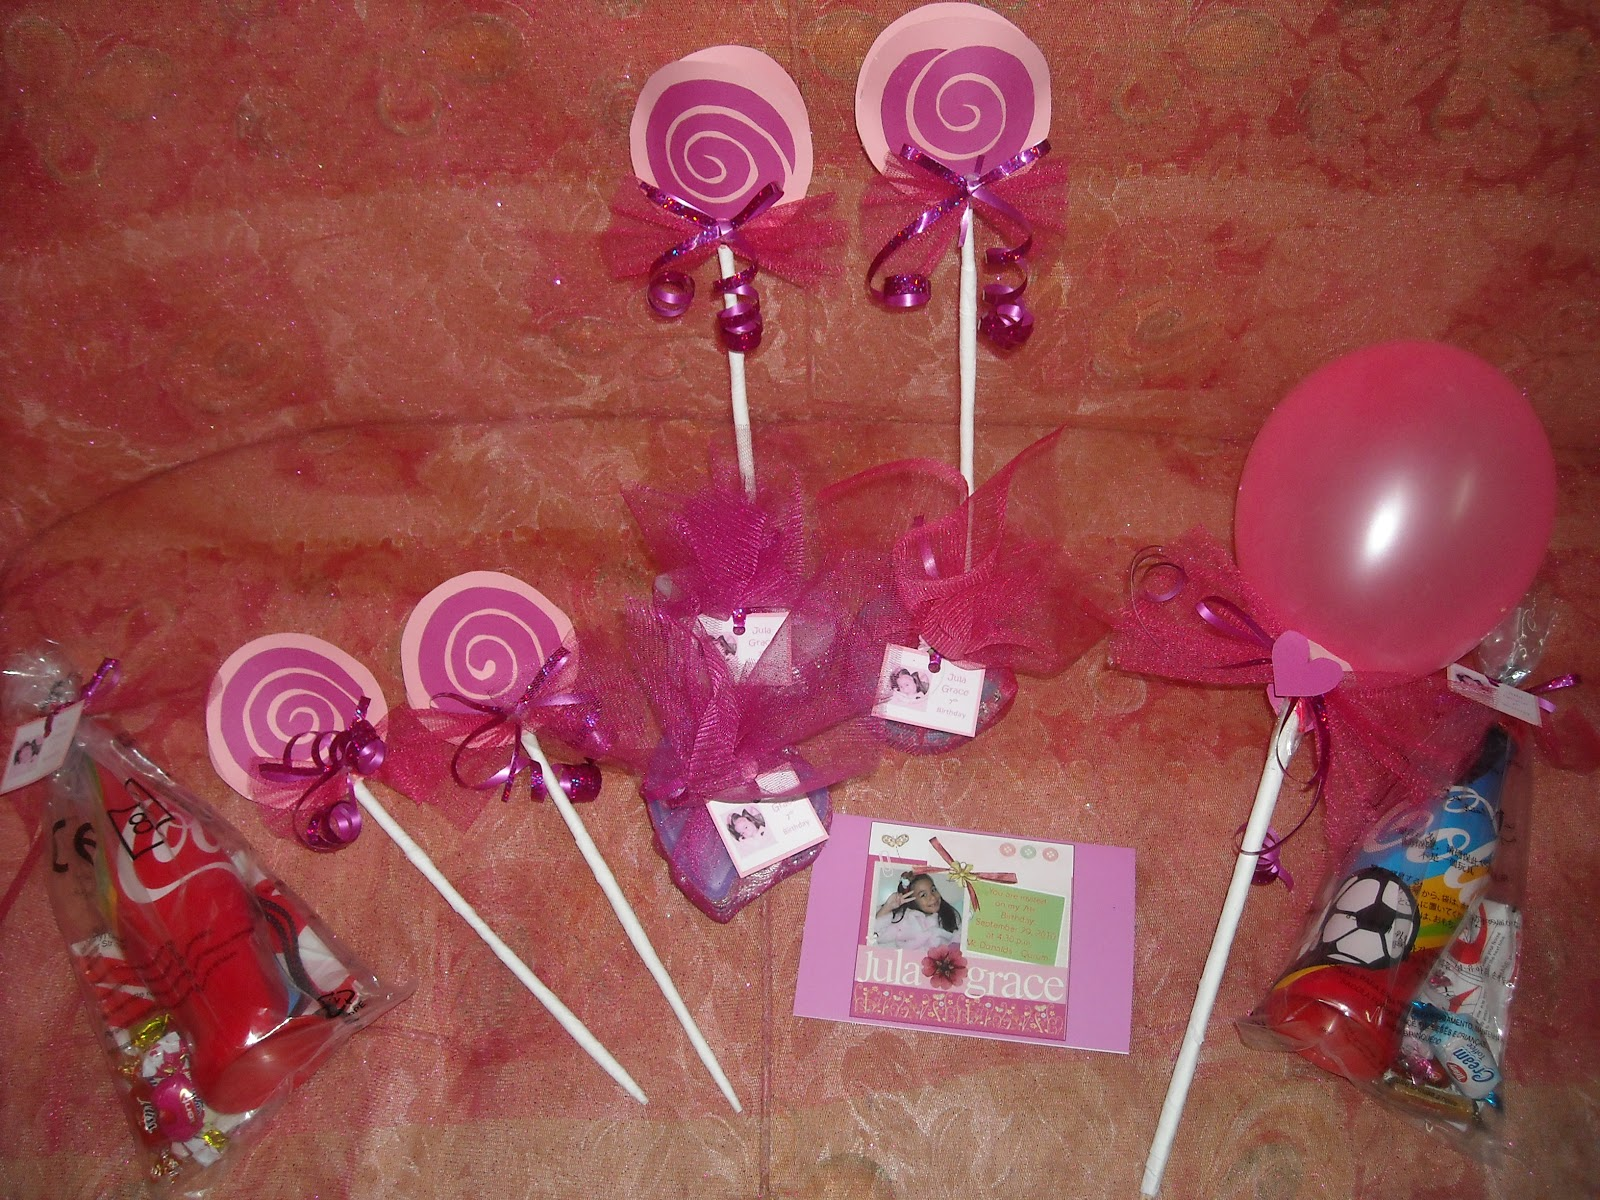 But An Idea Of Having A Seven Balloons And Lollipops In Her Program Since Its 7th Birthday We Design Banner With Pictures